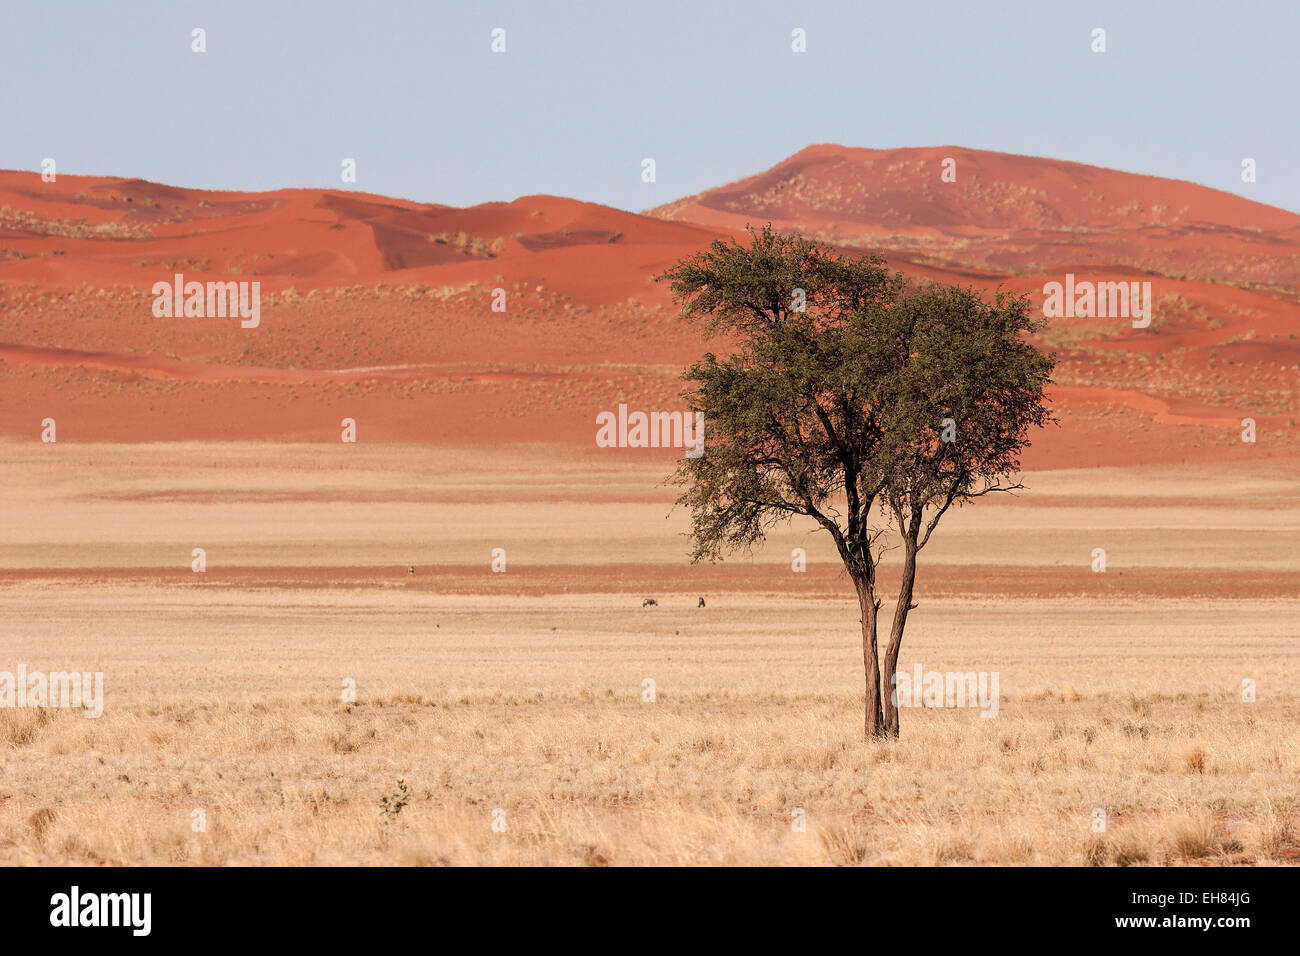 Camel Thorn tree (Vachellia erioloba) in the grassy steppe, dunes of the Namib Desert at the back, near road D707, - Stock Image